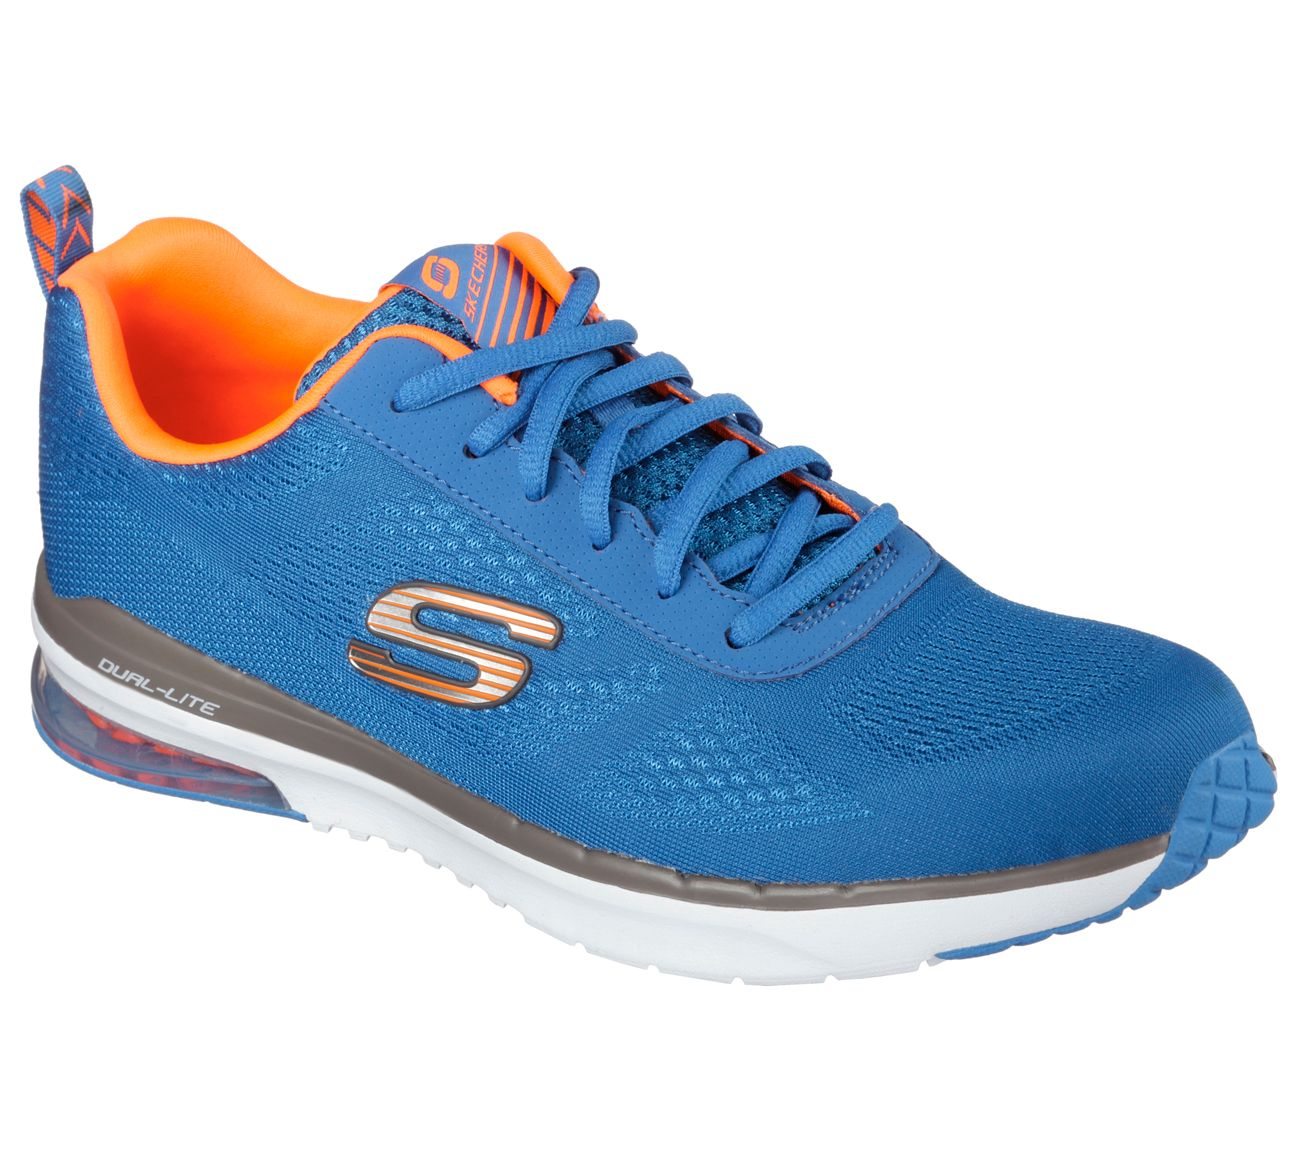 Improve your workout easily with the SKECHERS Skech Air